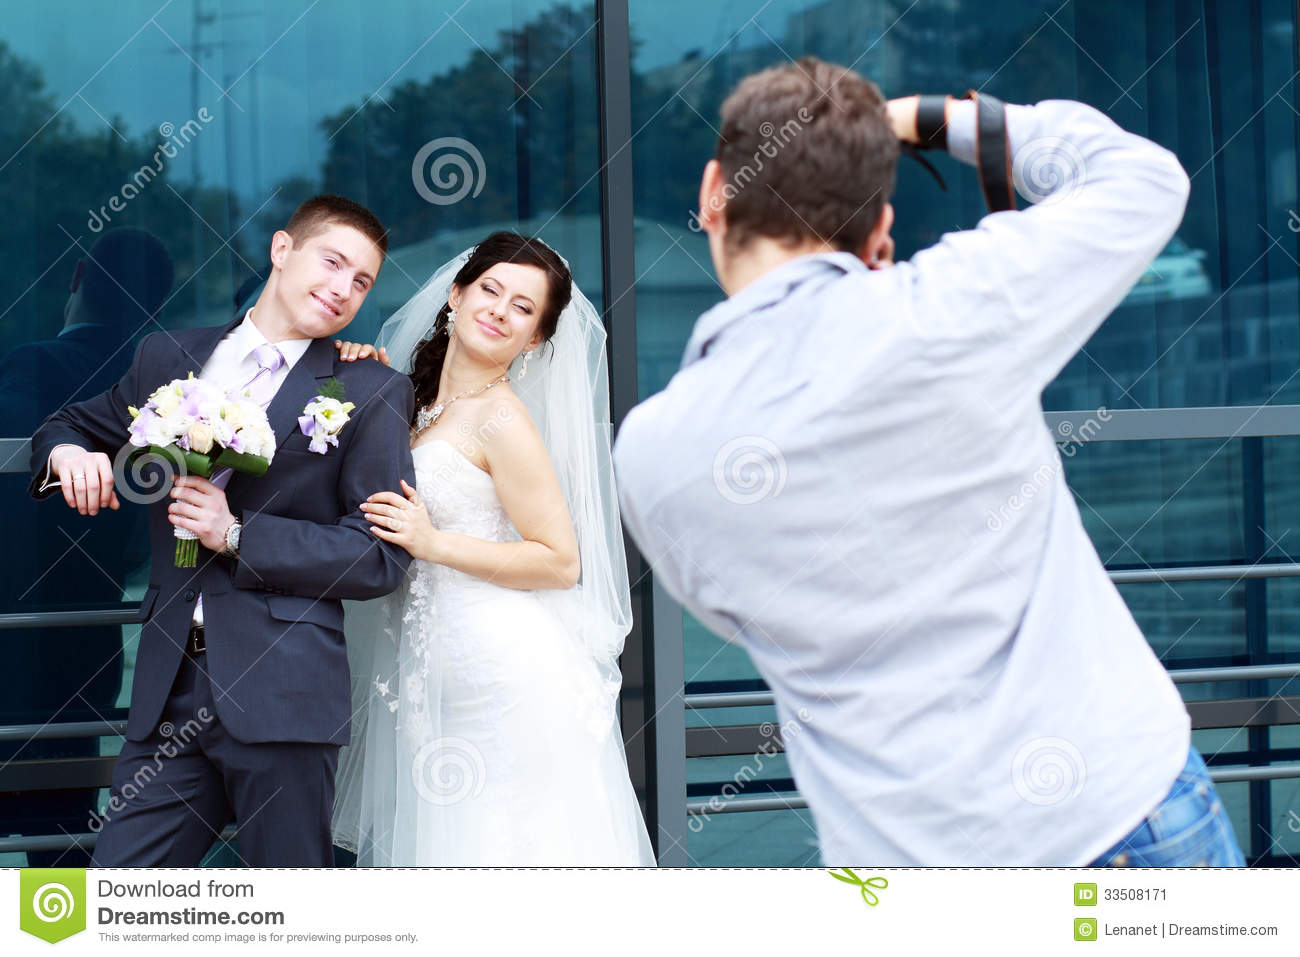 Photographer In Action Stock Image - Image: 33508171